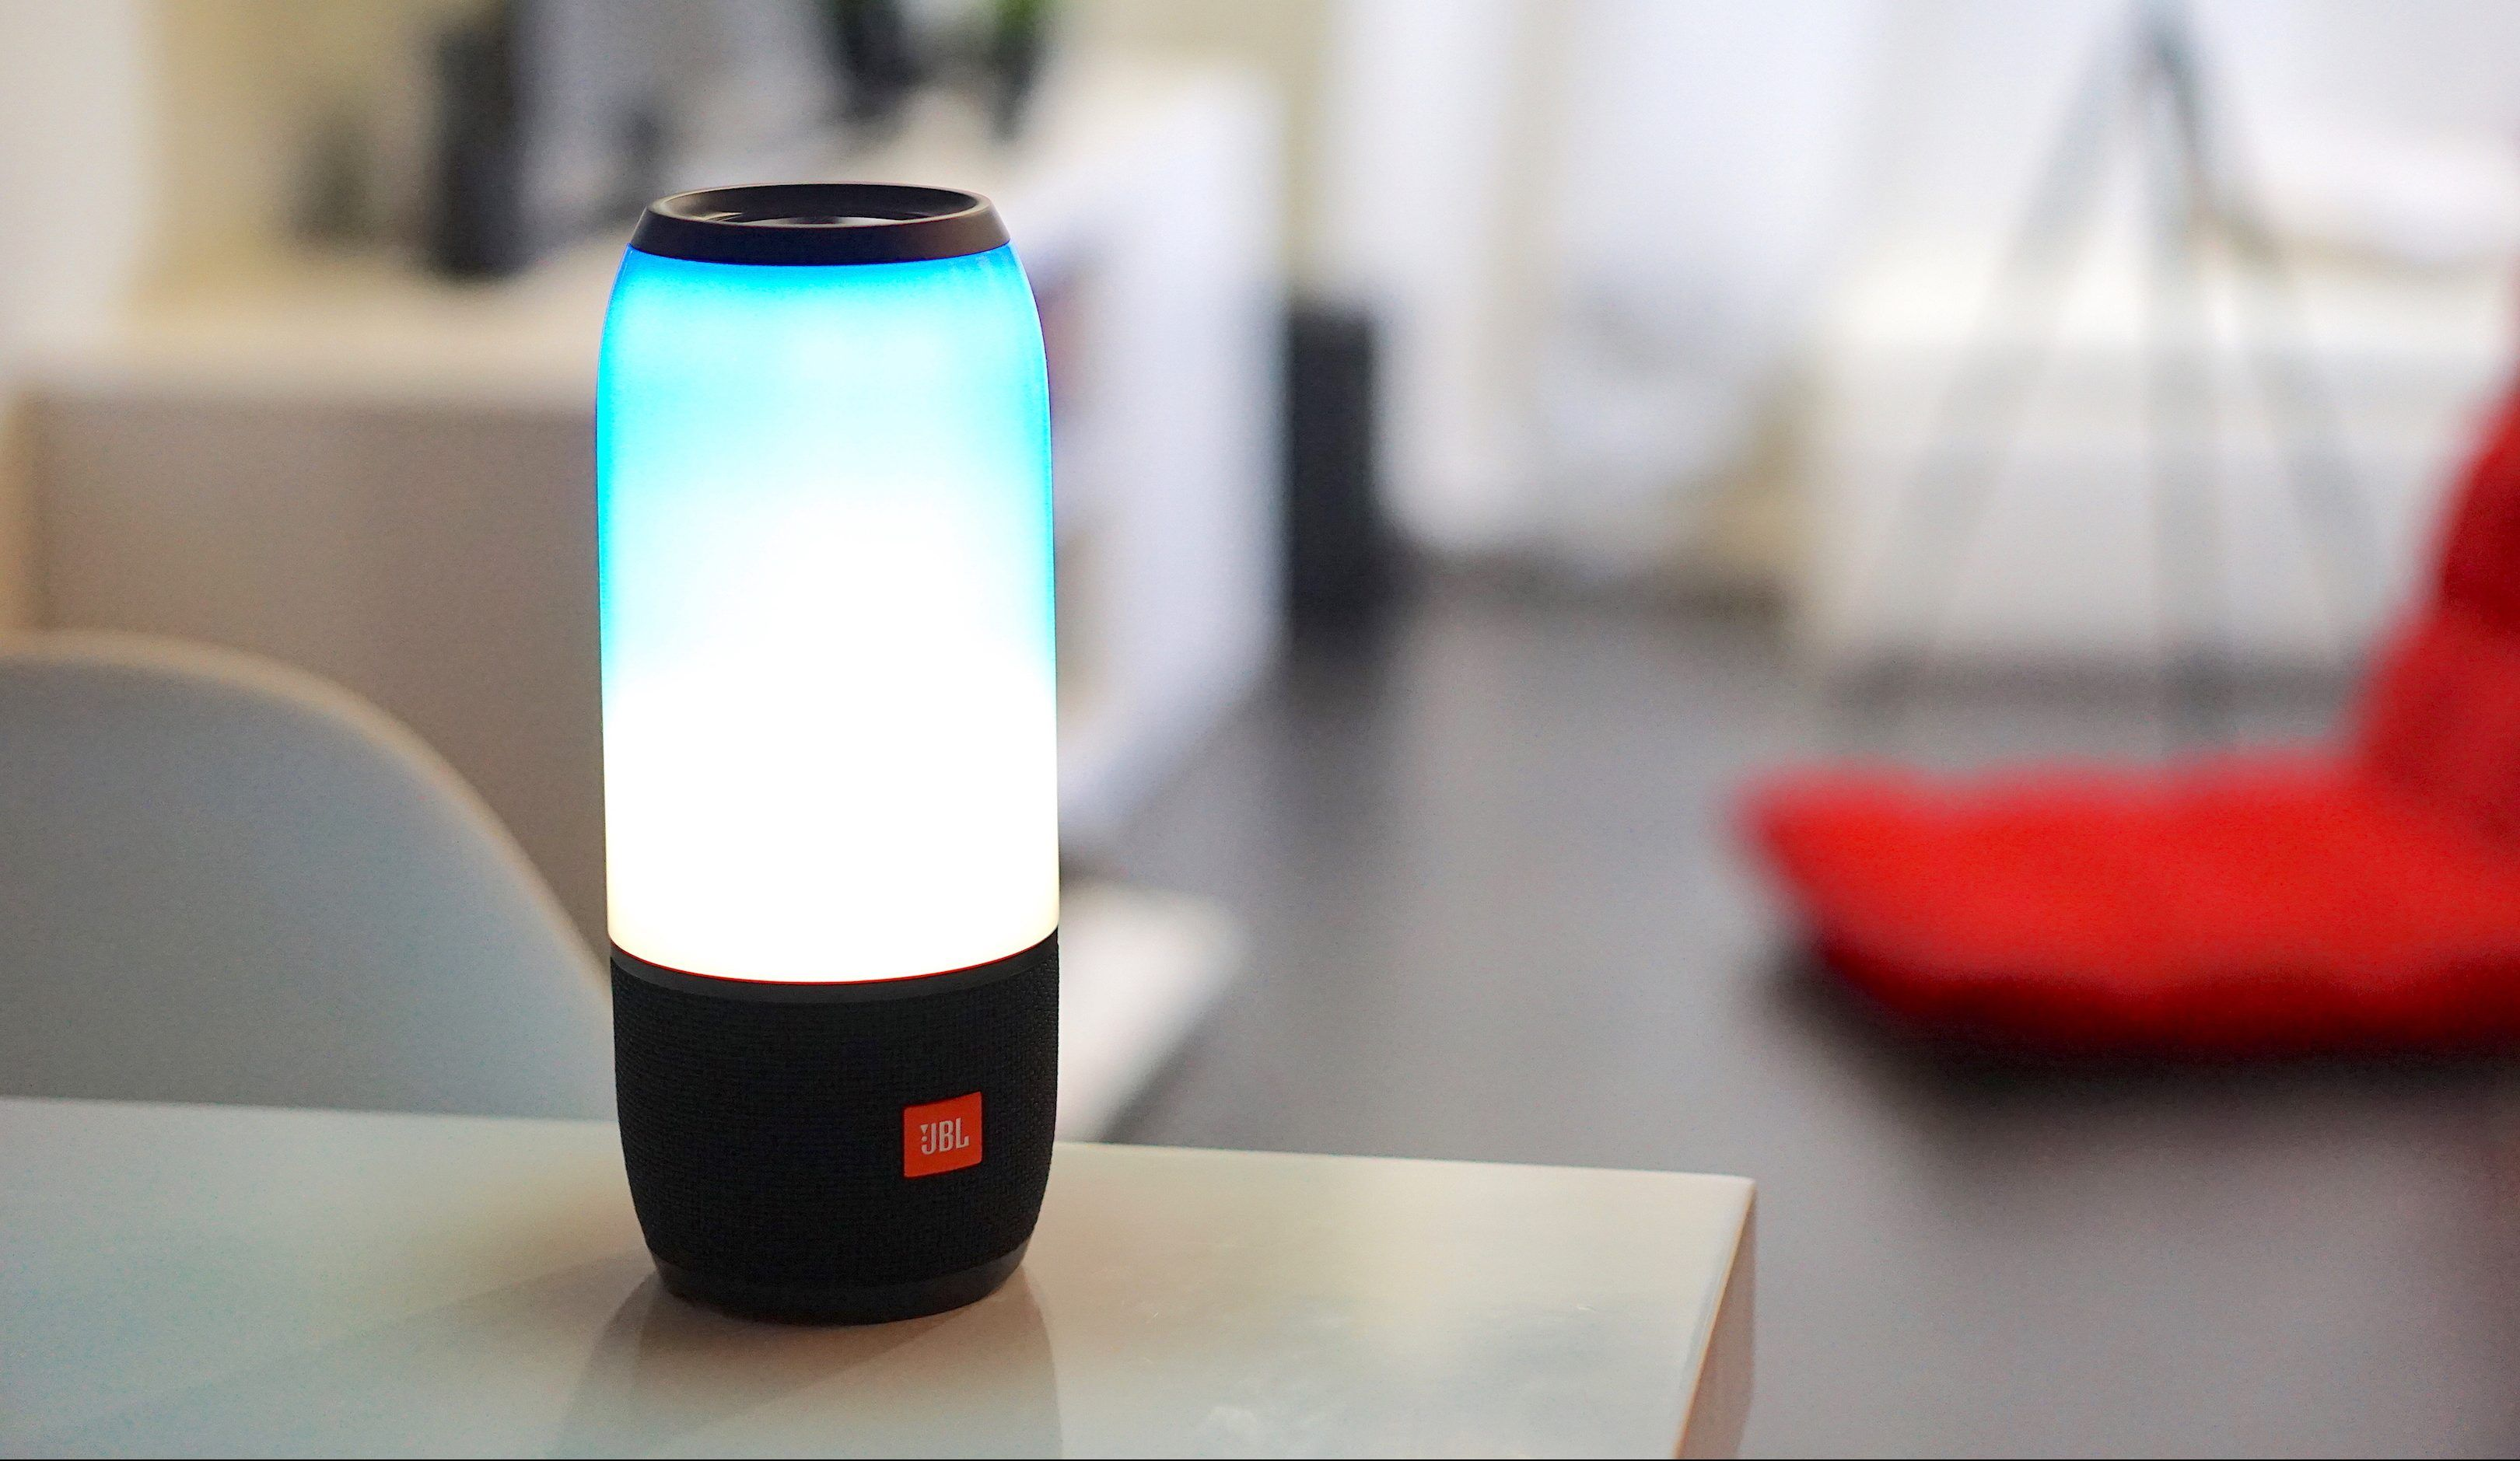 Lava Lamp Speaker Amazing Review  Jbl Pulse 3 Speaker The Lava Lamp That Sings  Http Inspiration